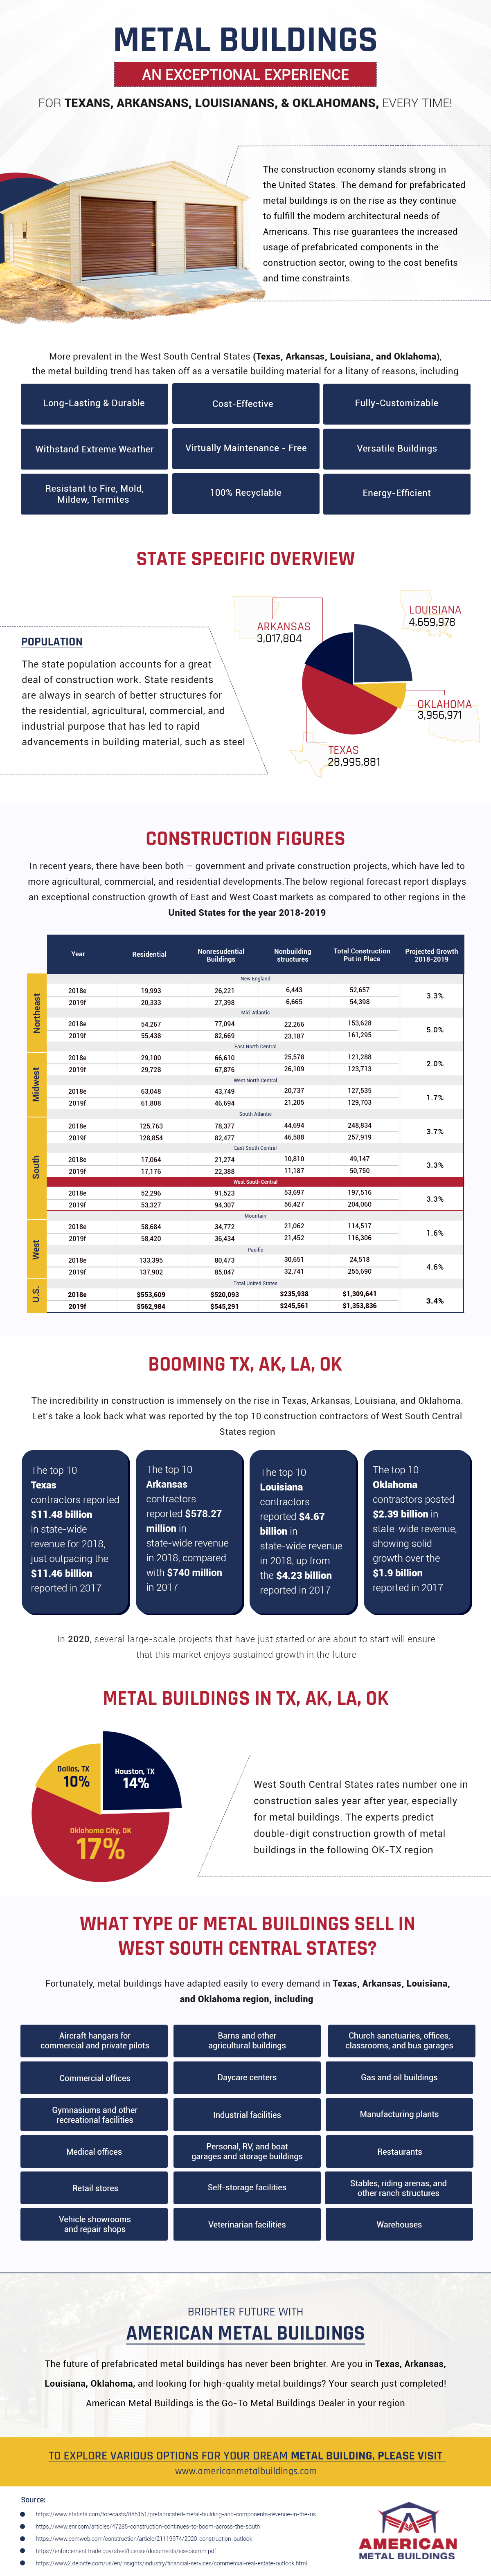 Metal Buildings: An Exceptional Experience For Texans, Arkansans, Louisianans, and Oklahomans #infographic